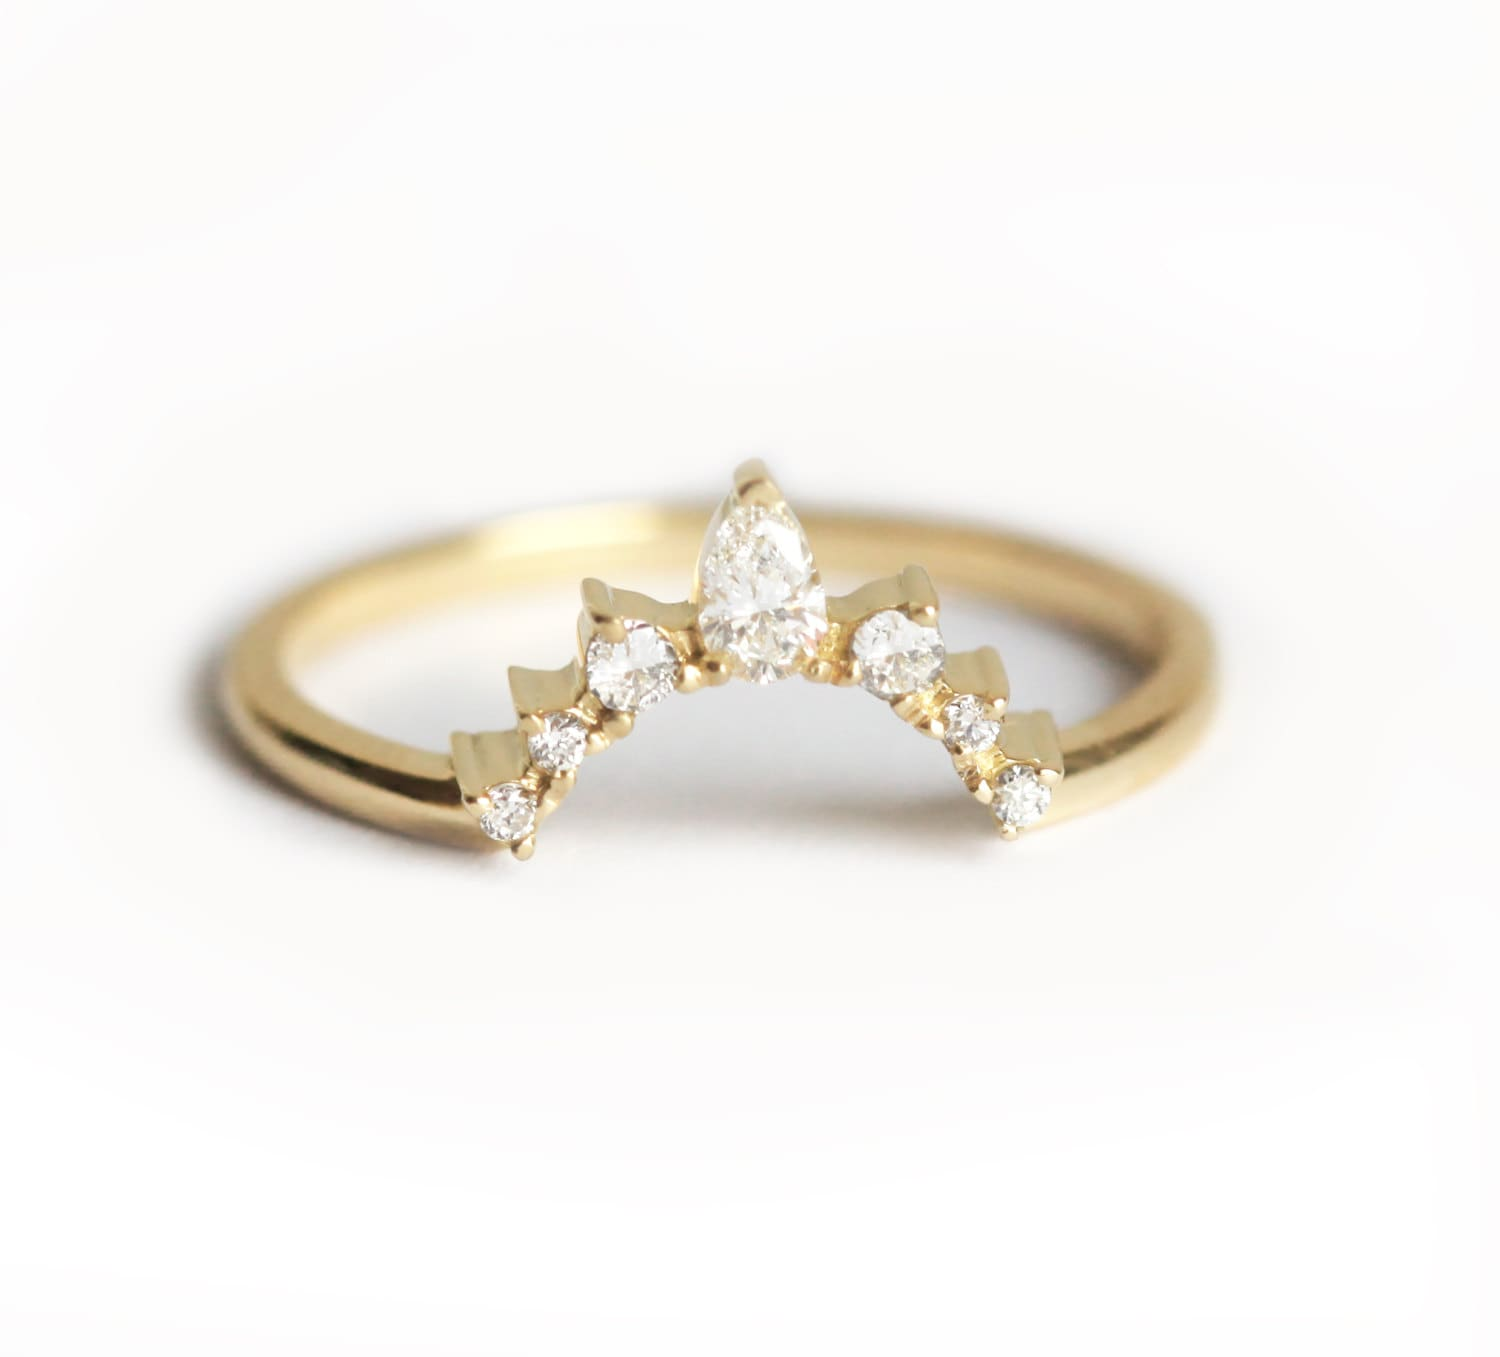 earth gold ring wedding white diamond brilliant curved anniversary chamise rings bands contoured top